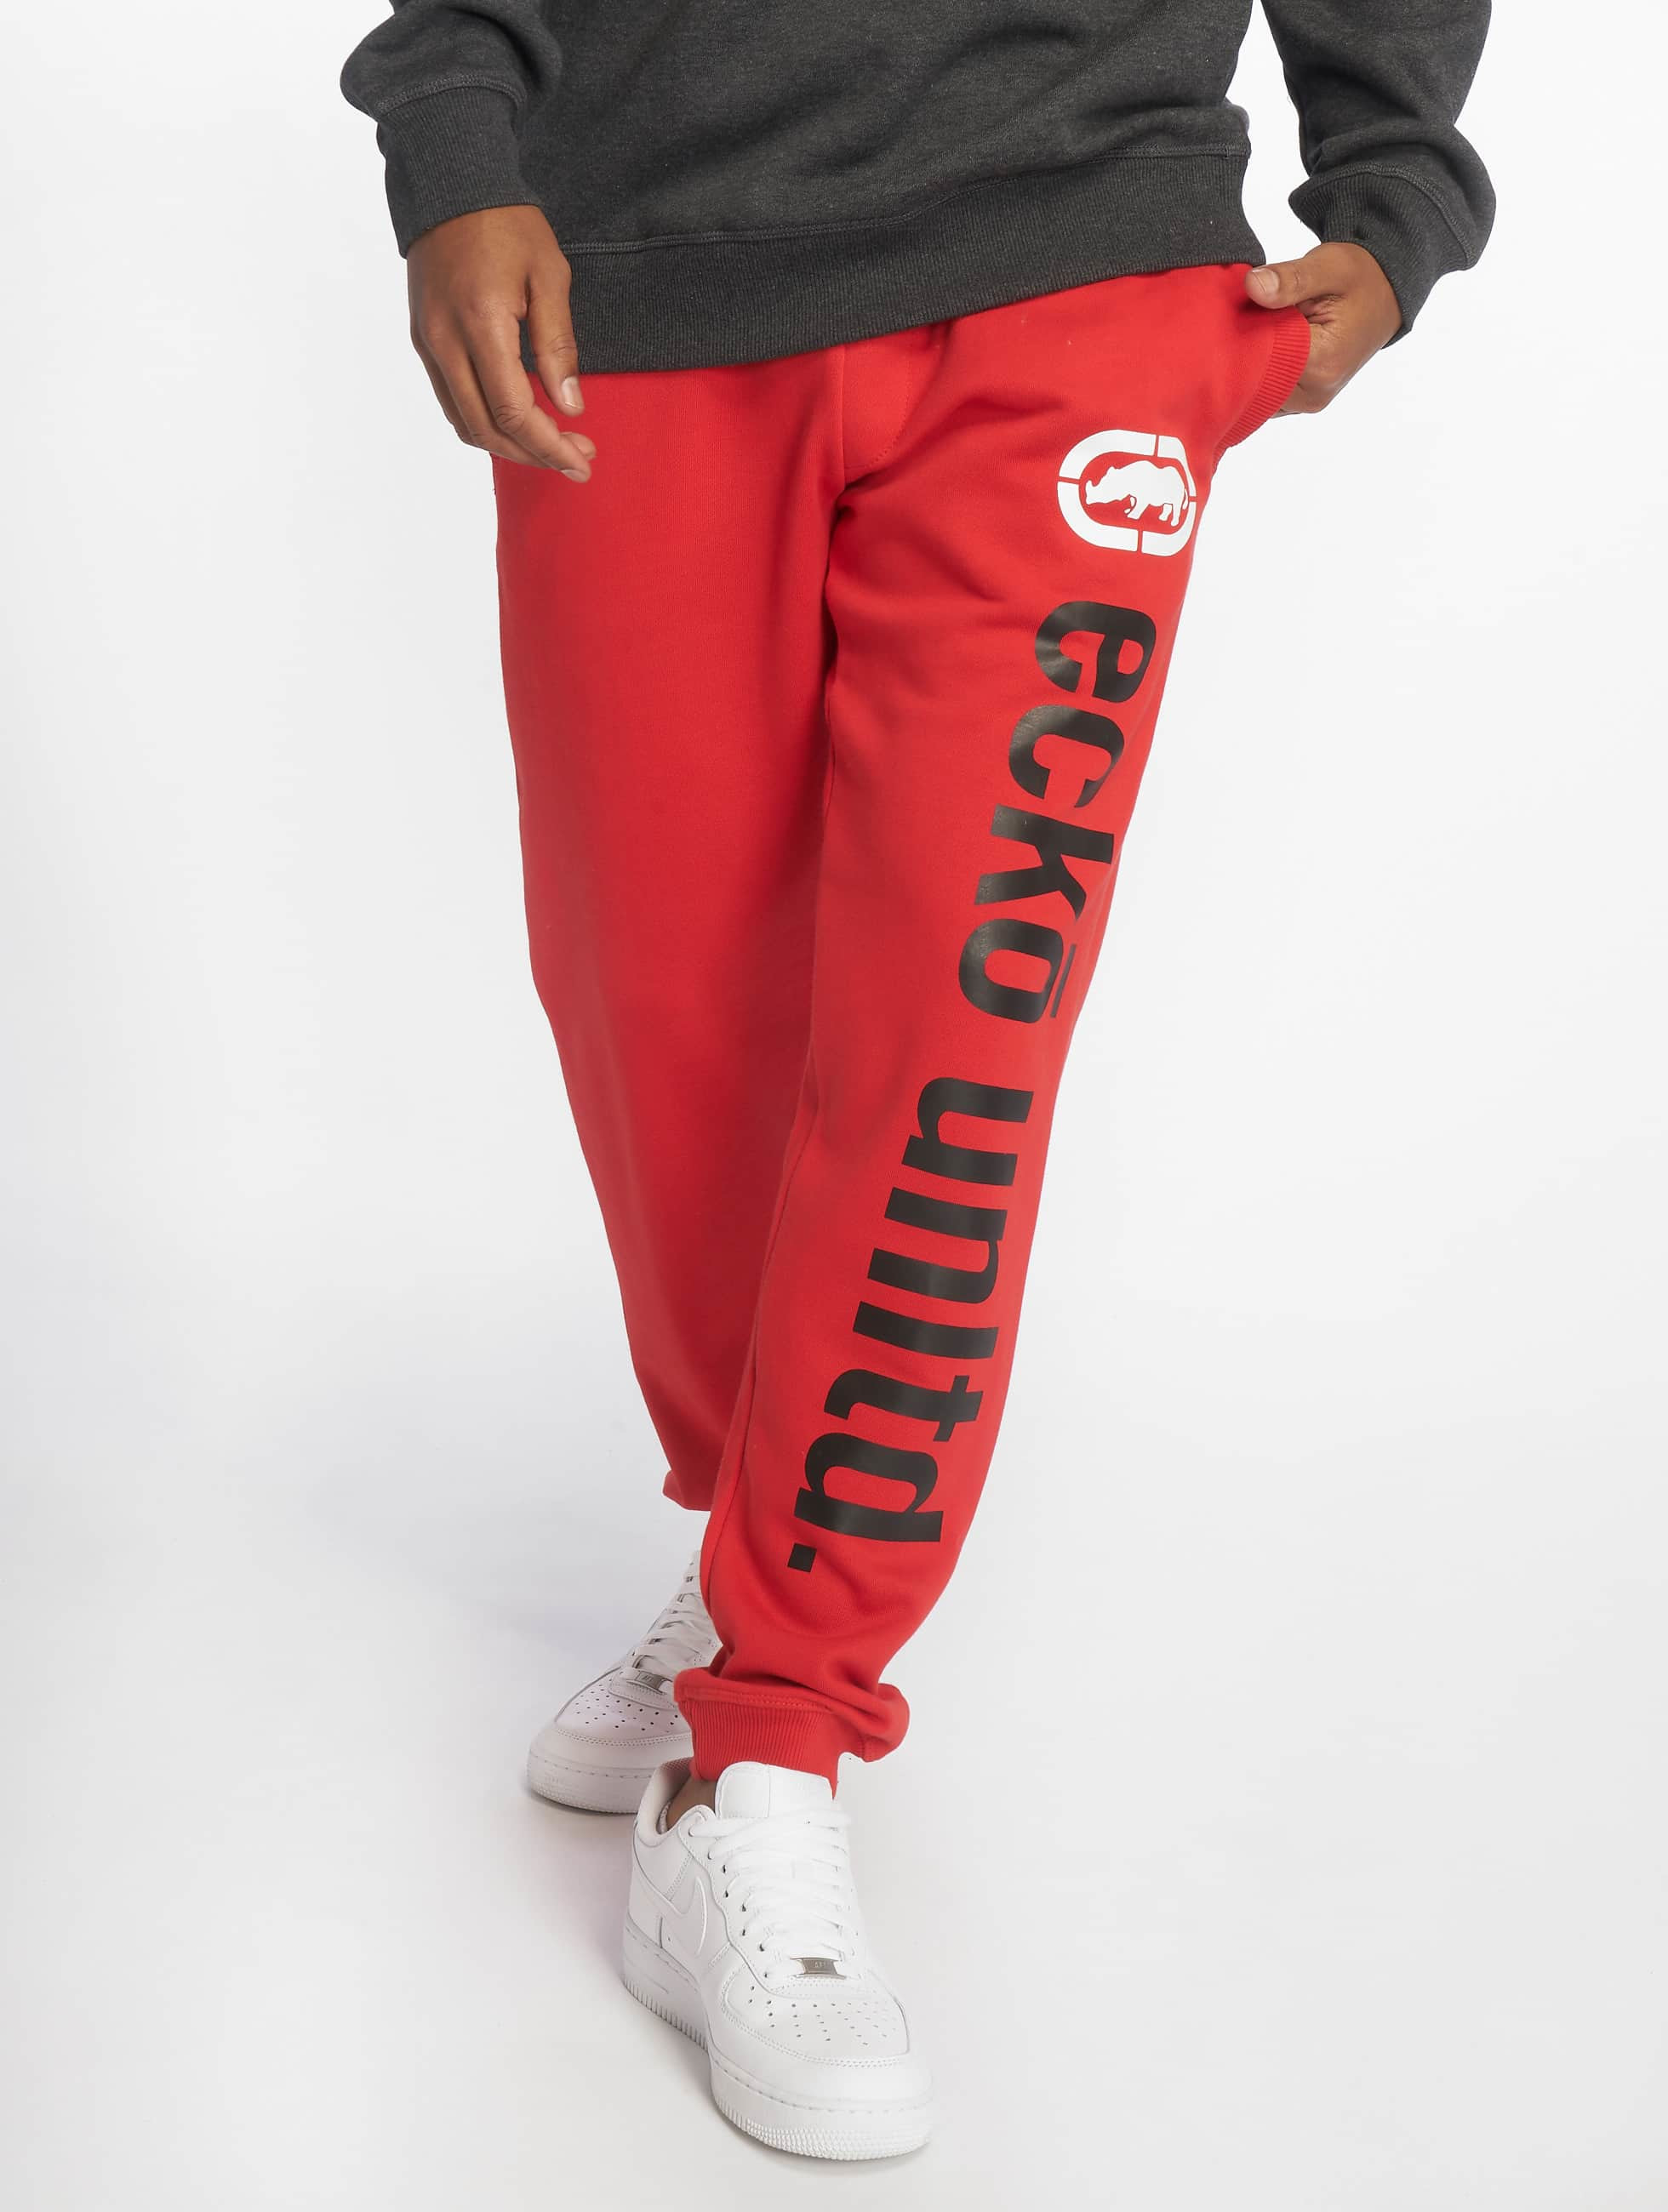 Ecko Unltd. / Sweat Pant 2Face in red S